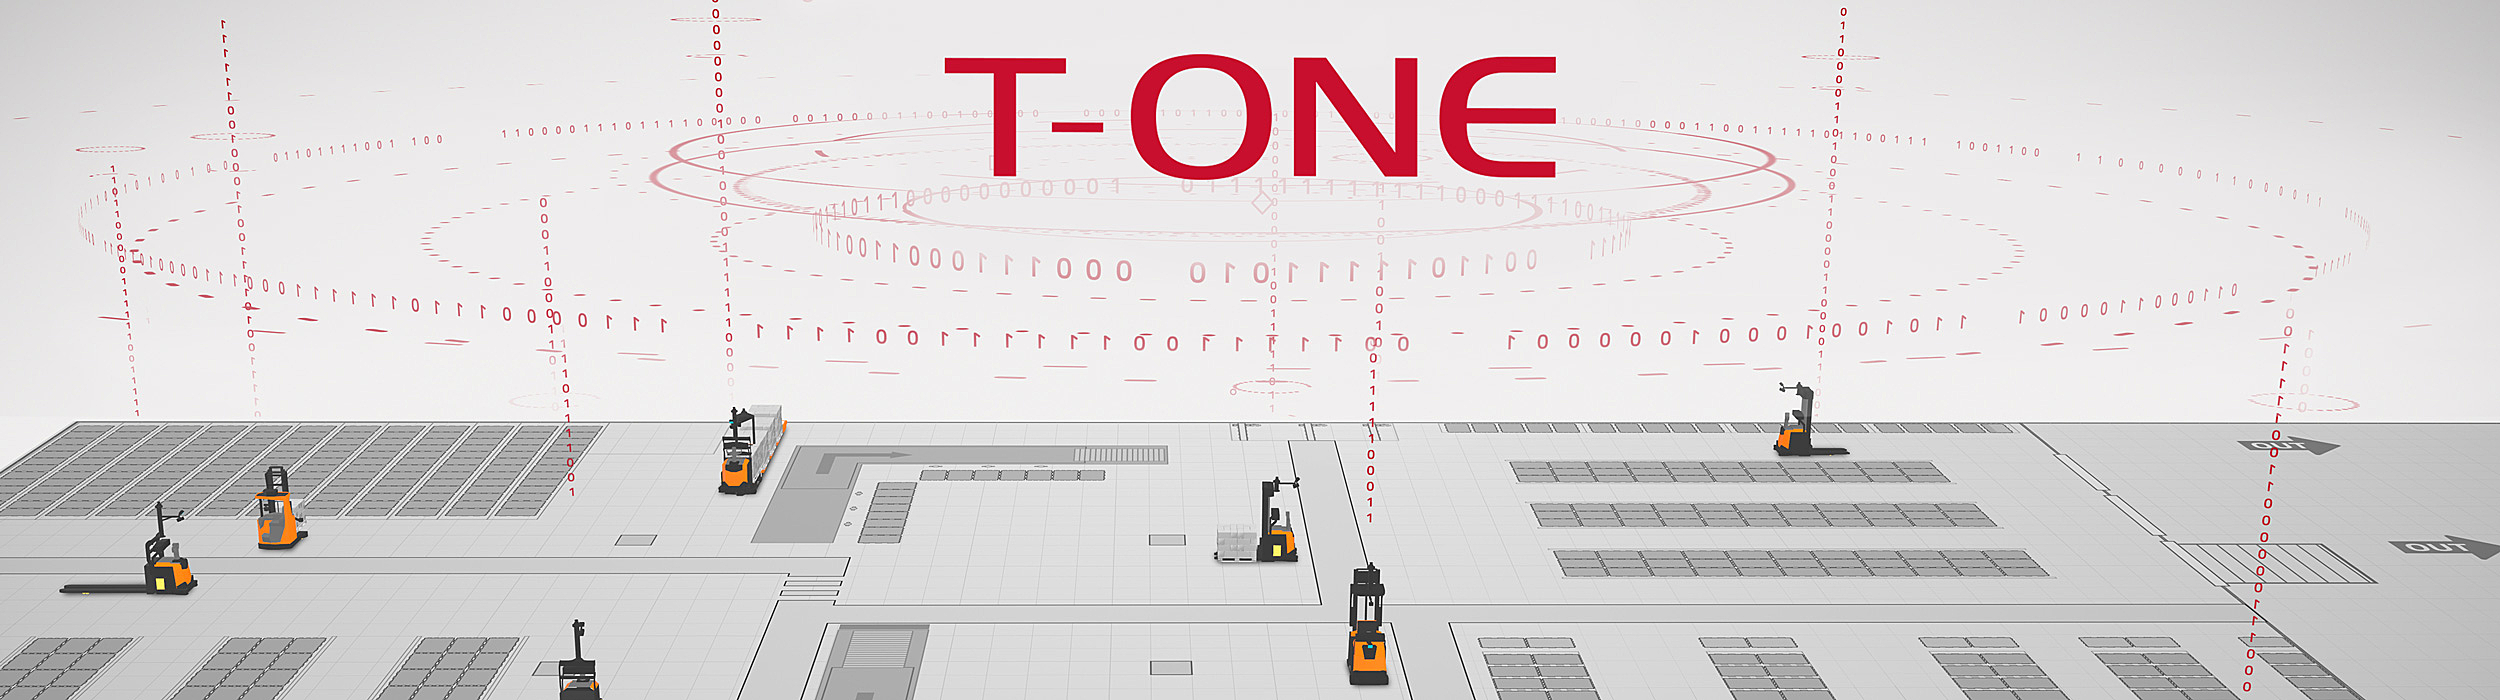 Toyota's AGV automation software T-ONE